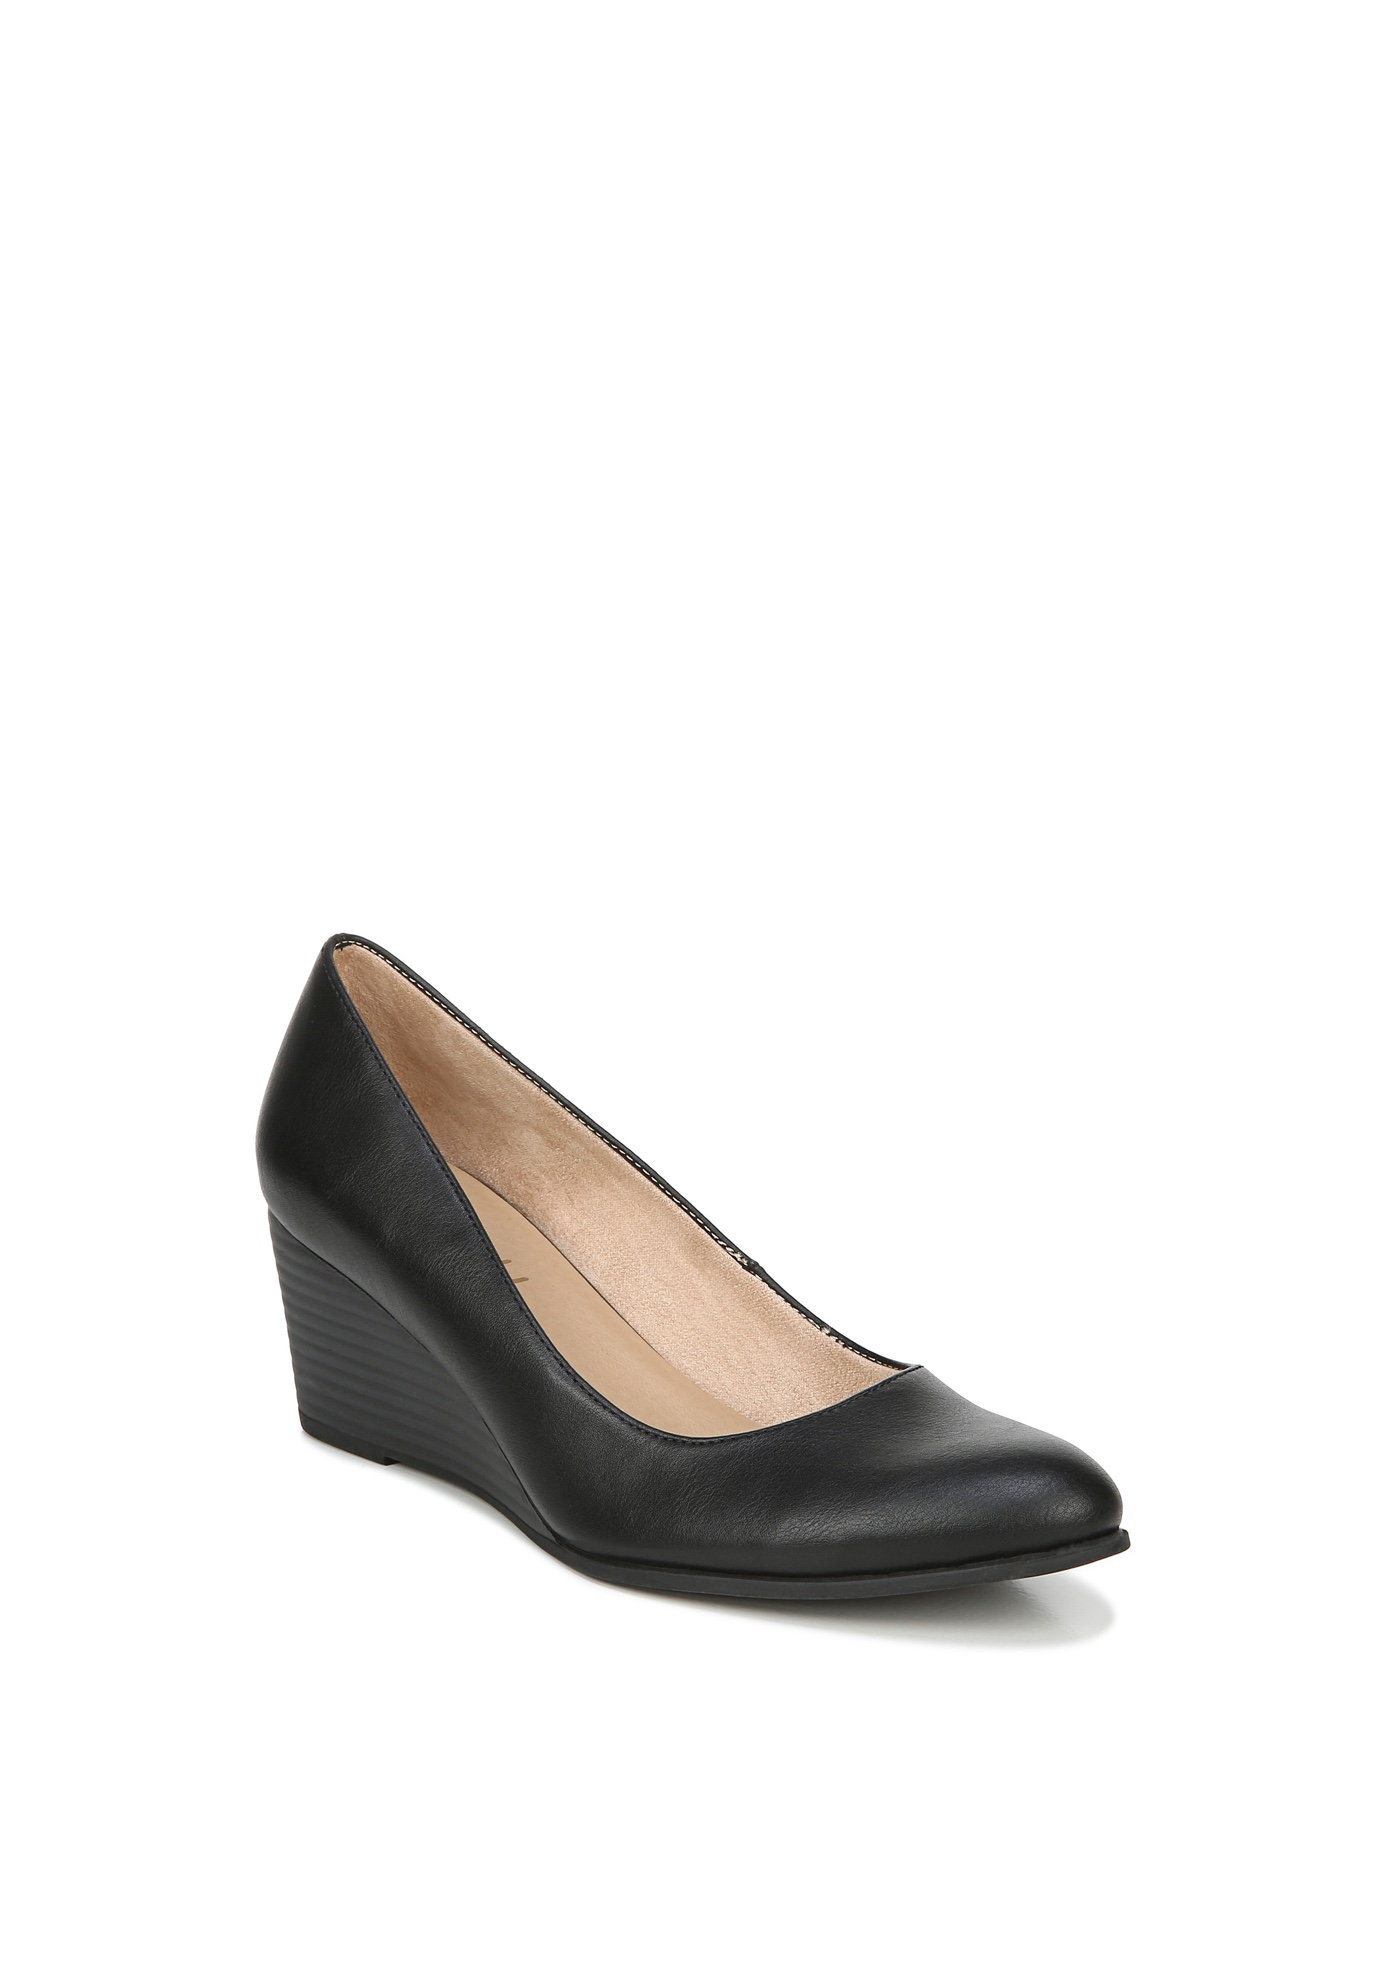 Glimmer Dress Shoe by SOUL Naturalizer,